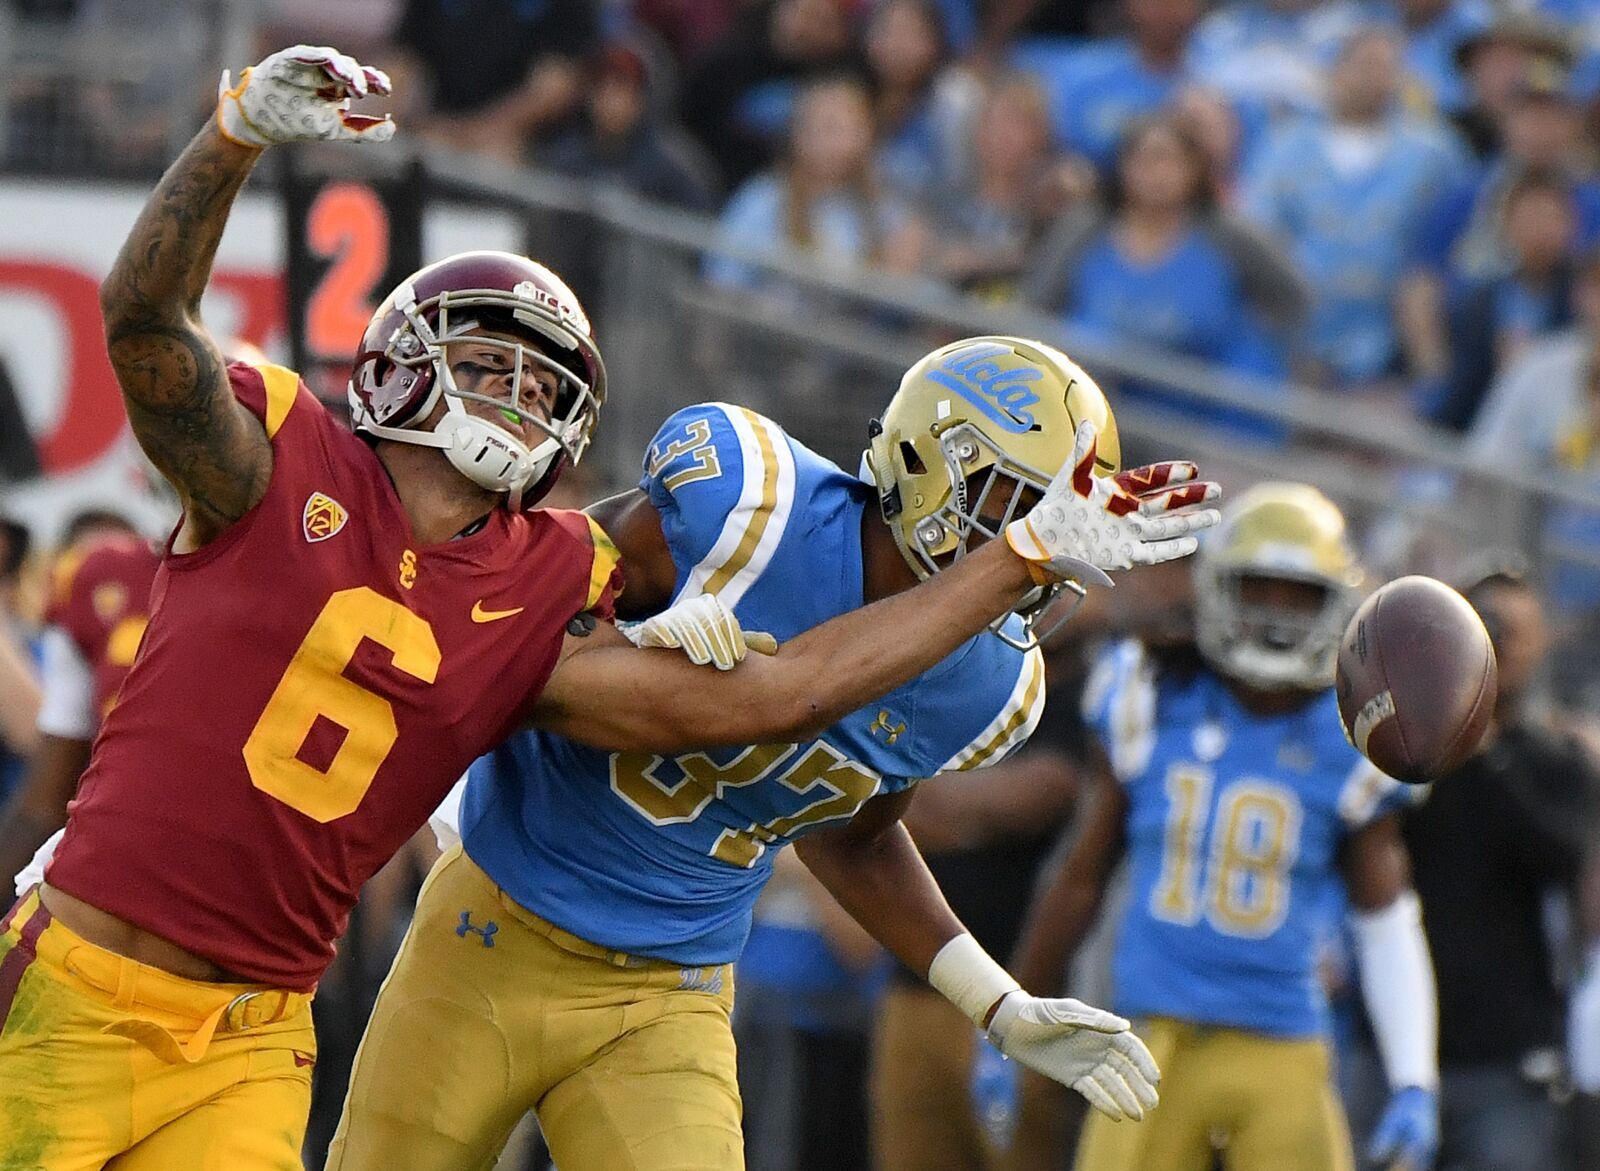 USC vs. UCLA used to be a big rivalry. Now it's irrelevant